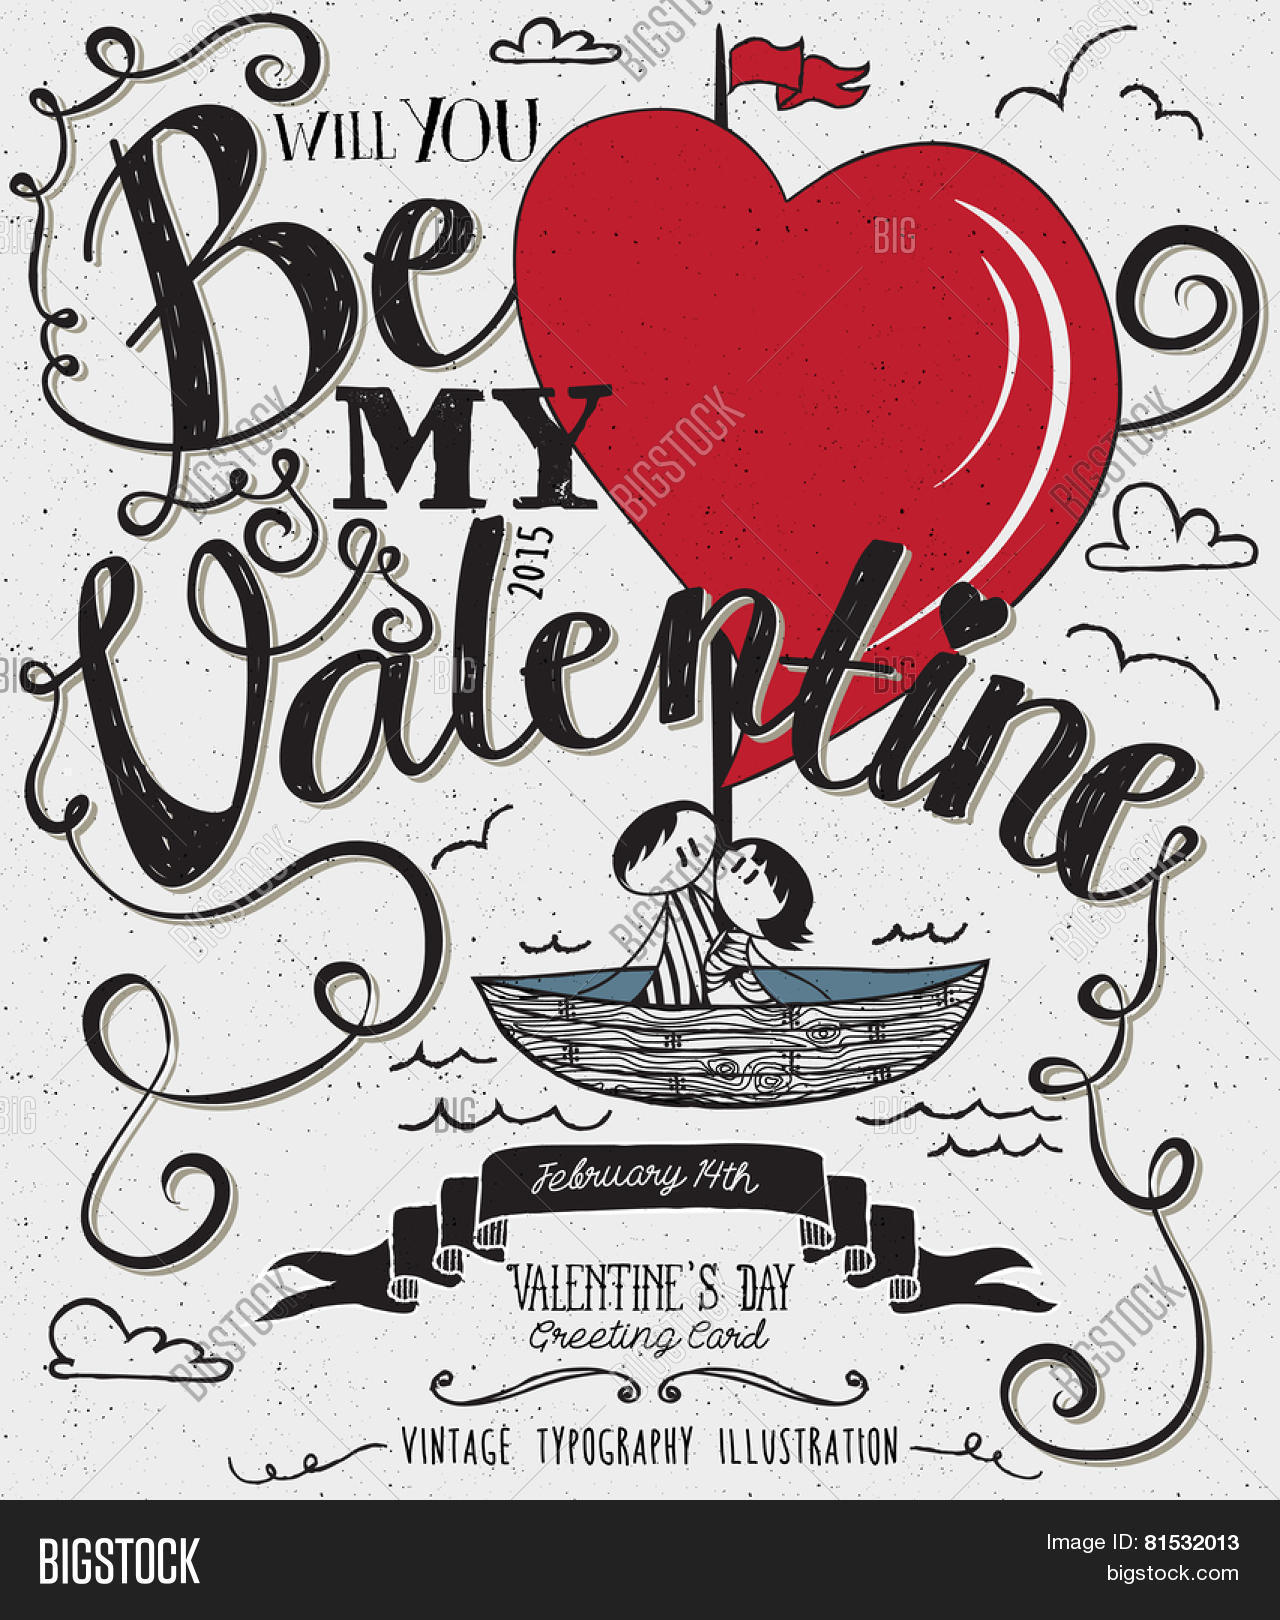 Valentines Day Typography Art Poster Hand Drawn Cute Stick Figures Couple Sailing In A